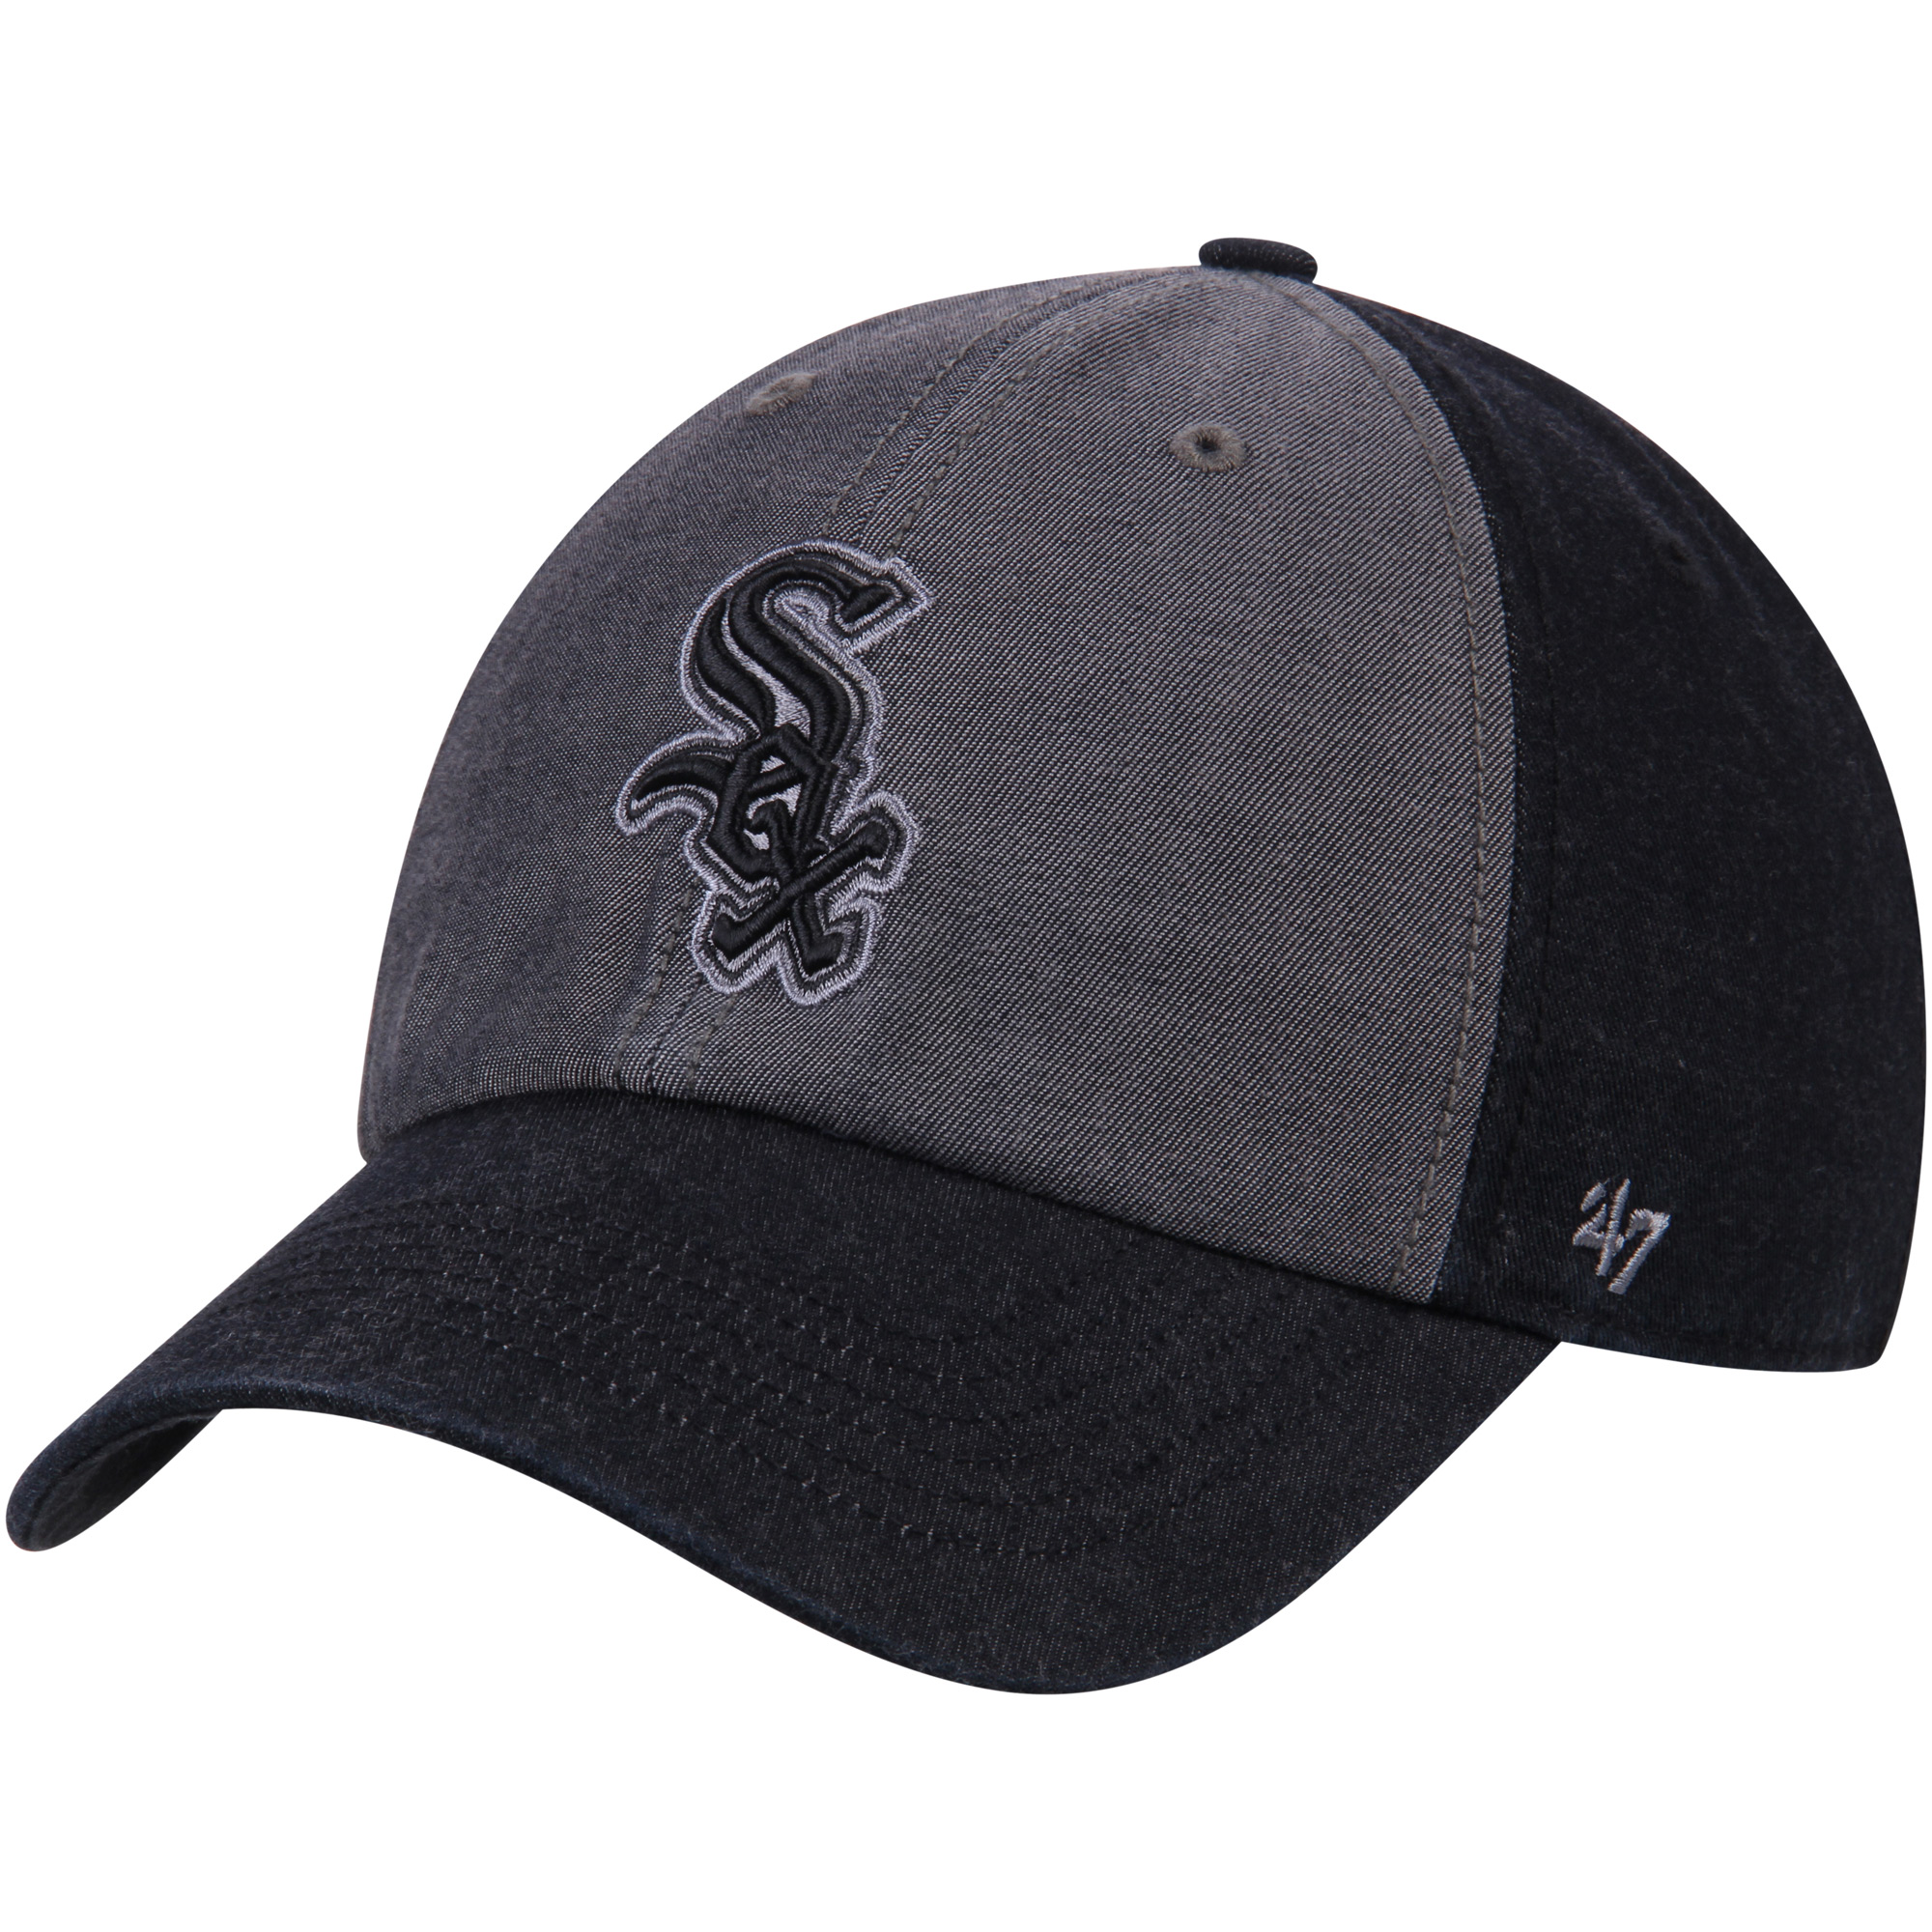 Chicago White Sox '47 Encoder Franchise Fitted Hat - Heathered Gray/Black